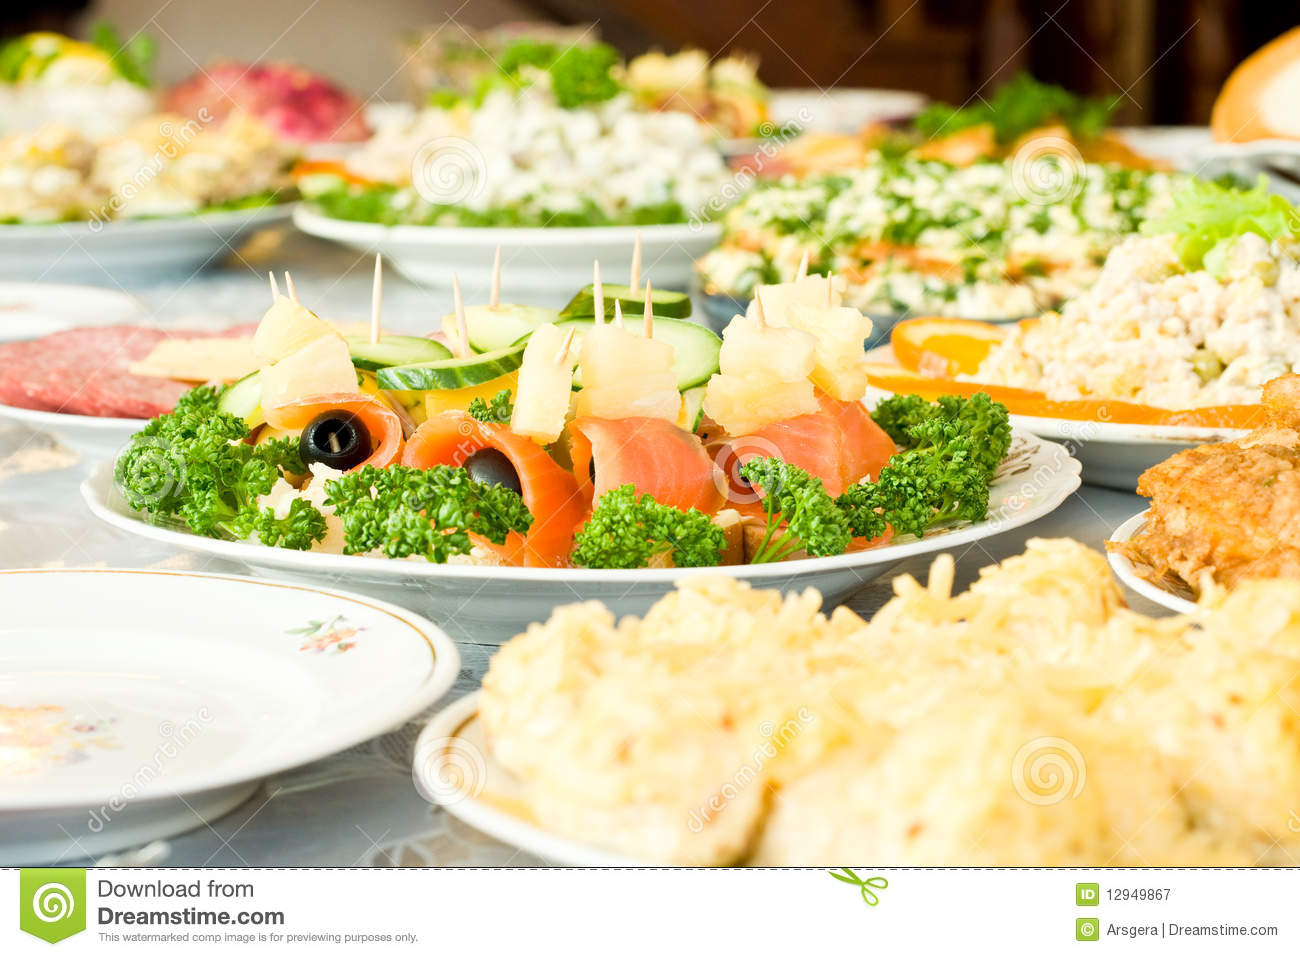 Canape banquet in the restaurant royalty free stock for Canape banquette